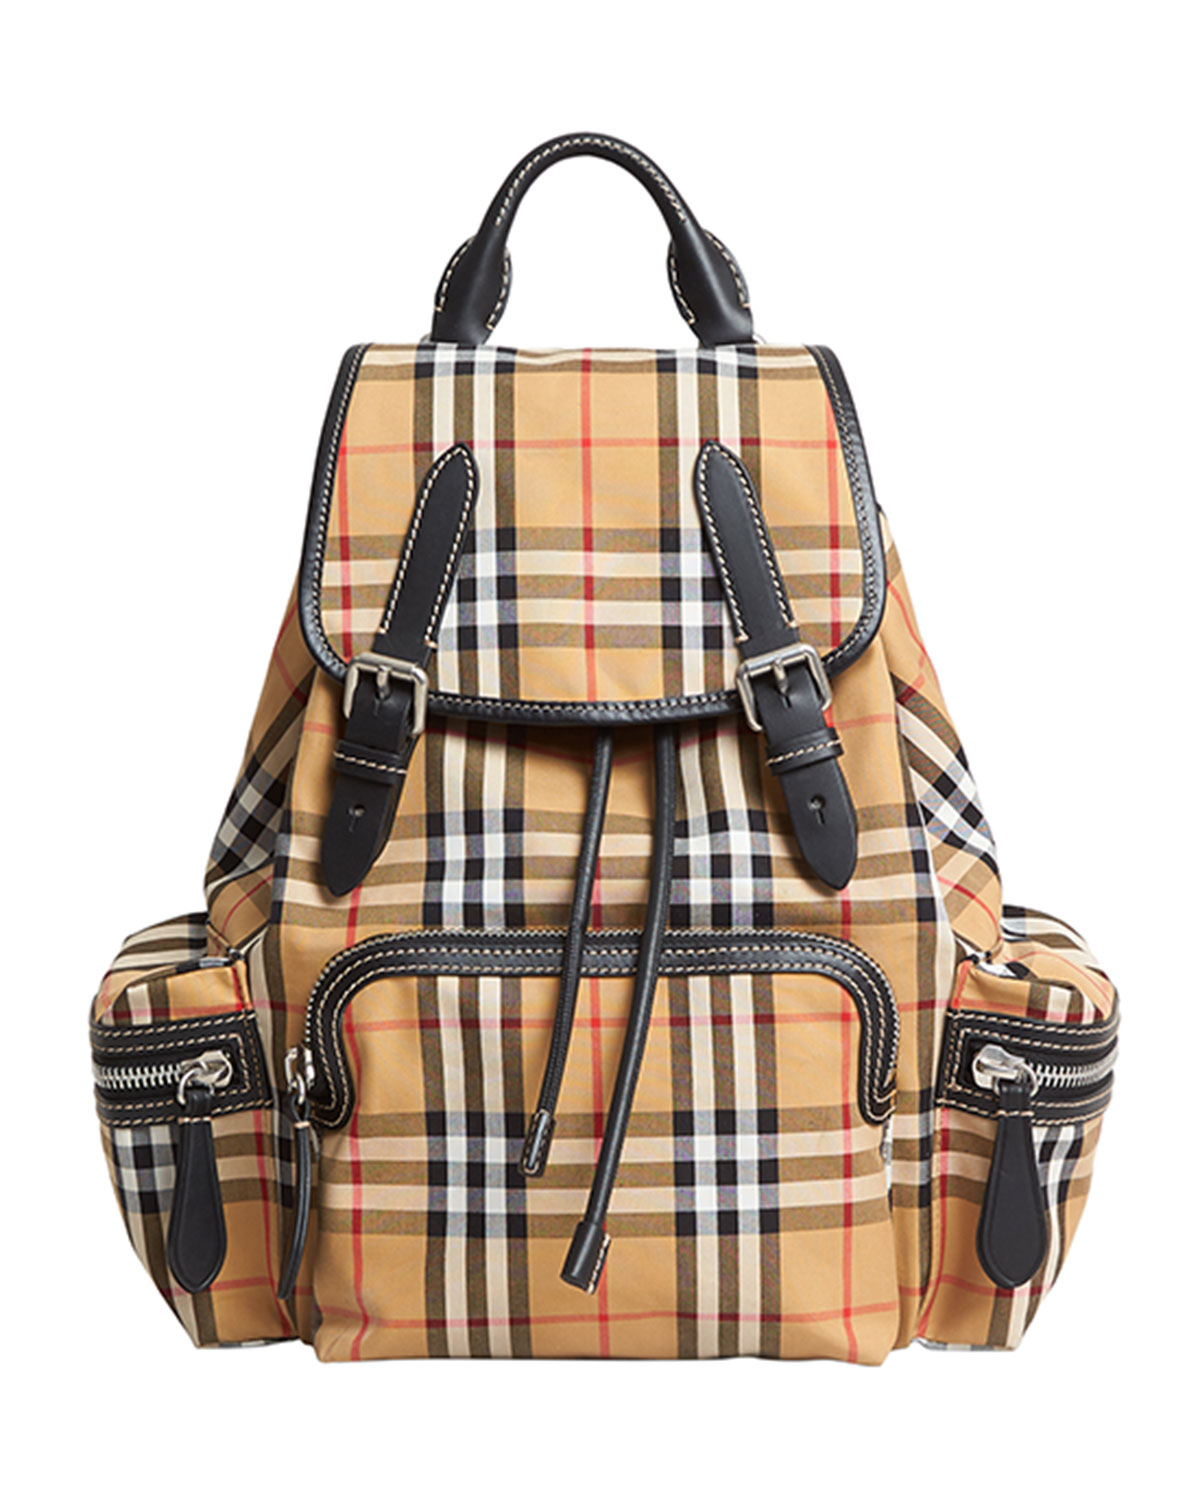 Burberry Small Rucksack Vintage Check Sailing Backpack  0634536d0a2e2